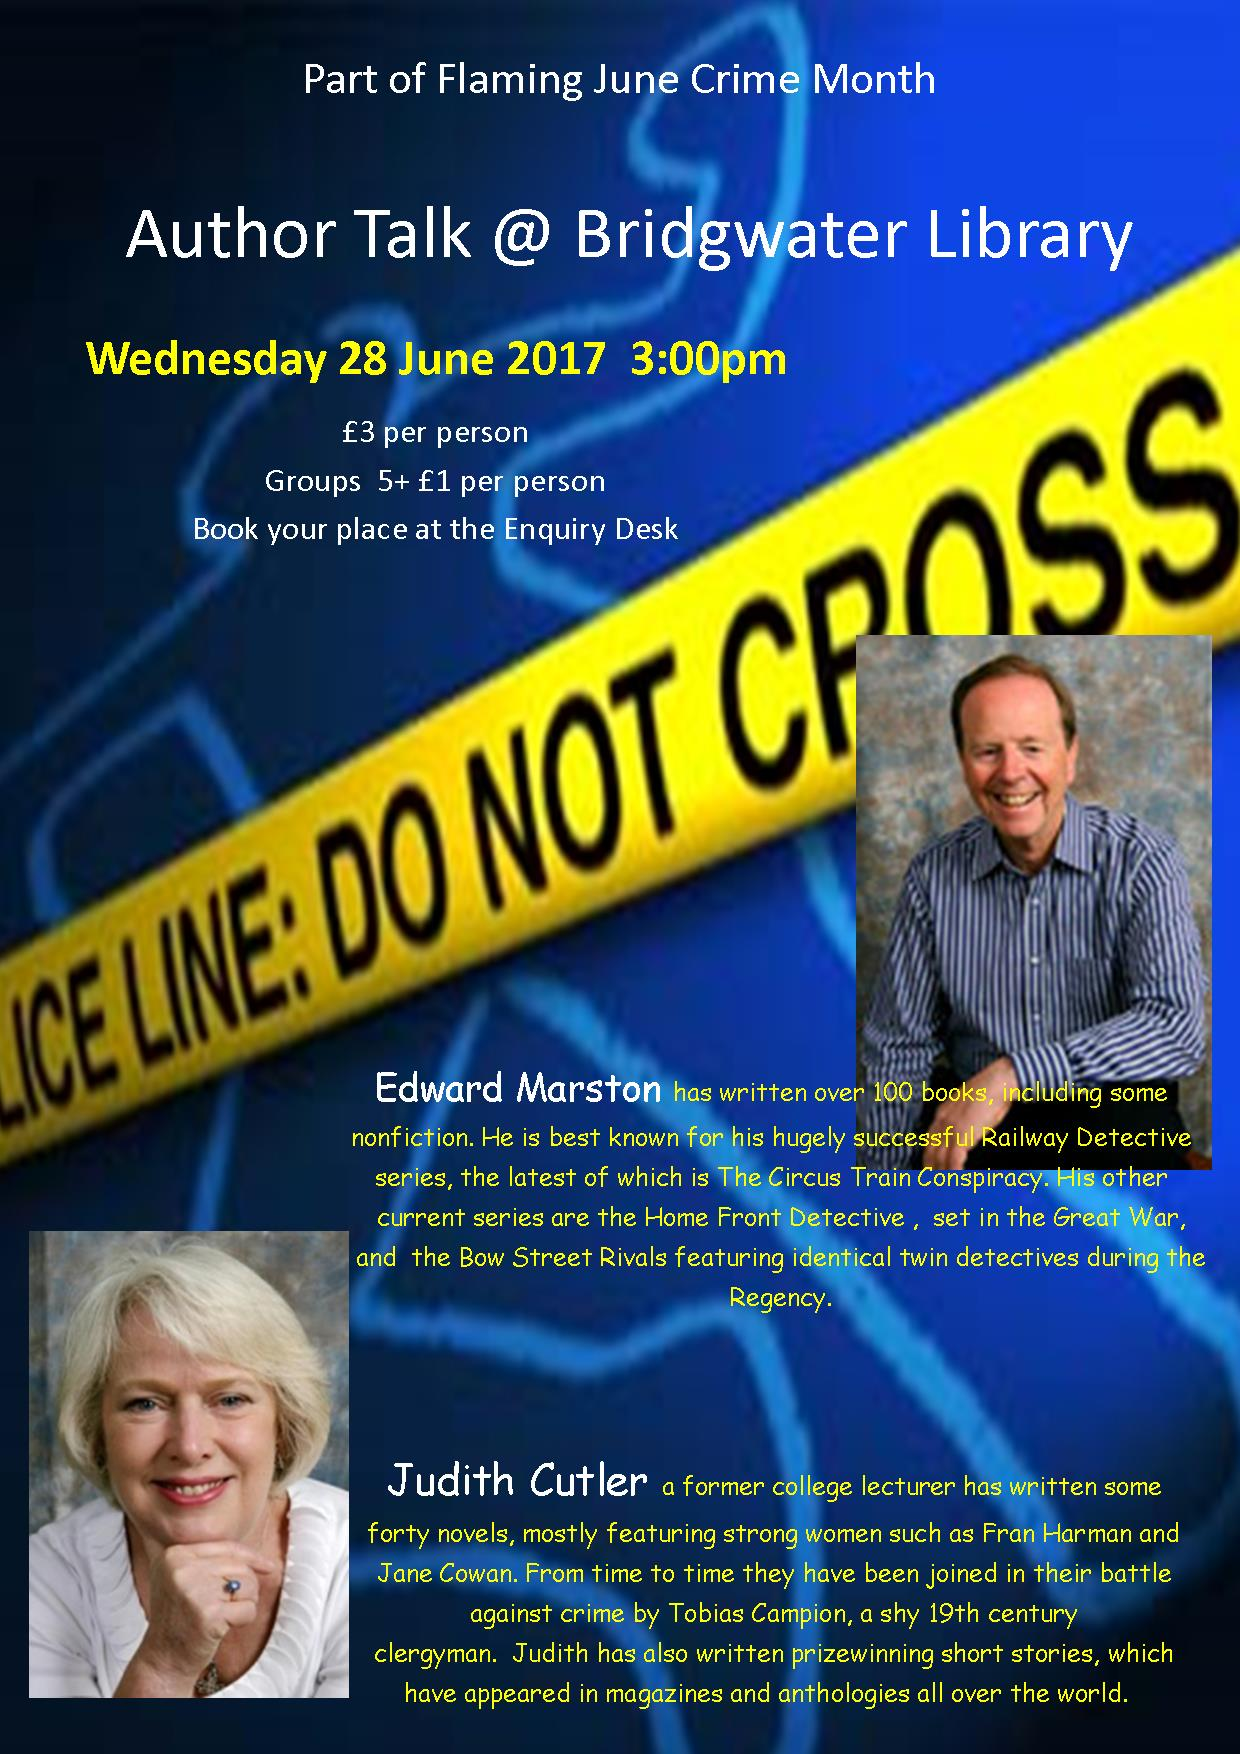 Crime Author Talk; Judith Cutler & Edward Marston!